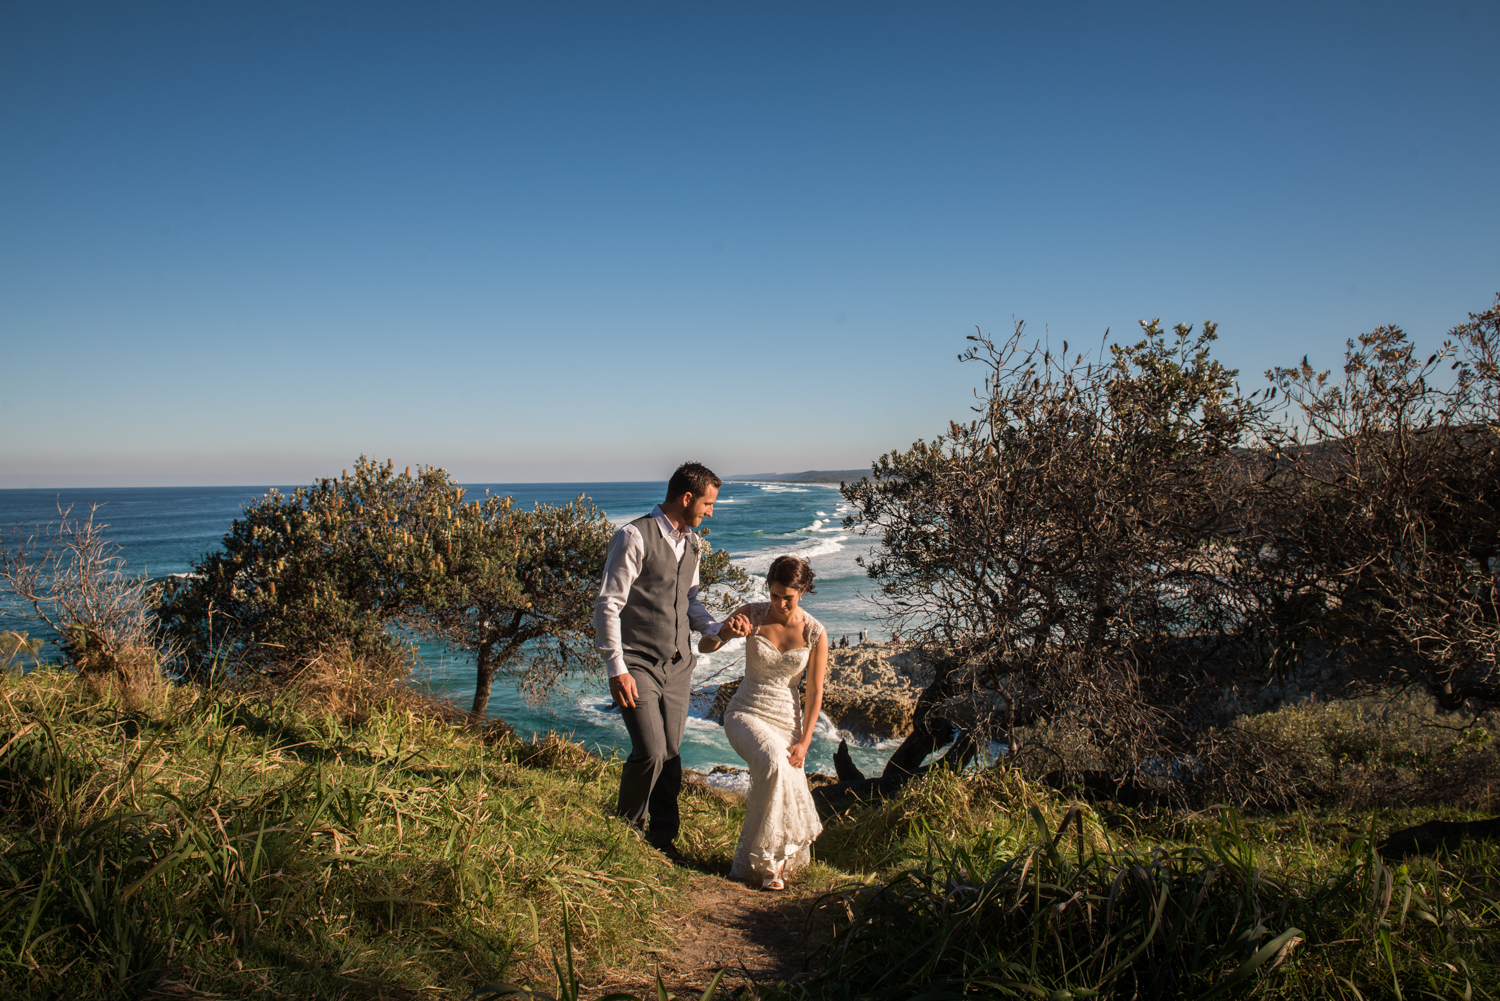 perfect view on a perfect Straddie wedding day